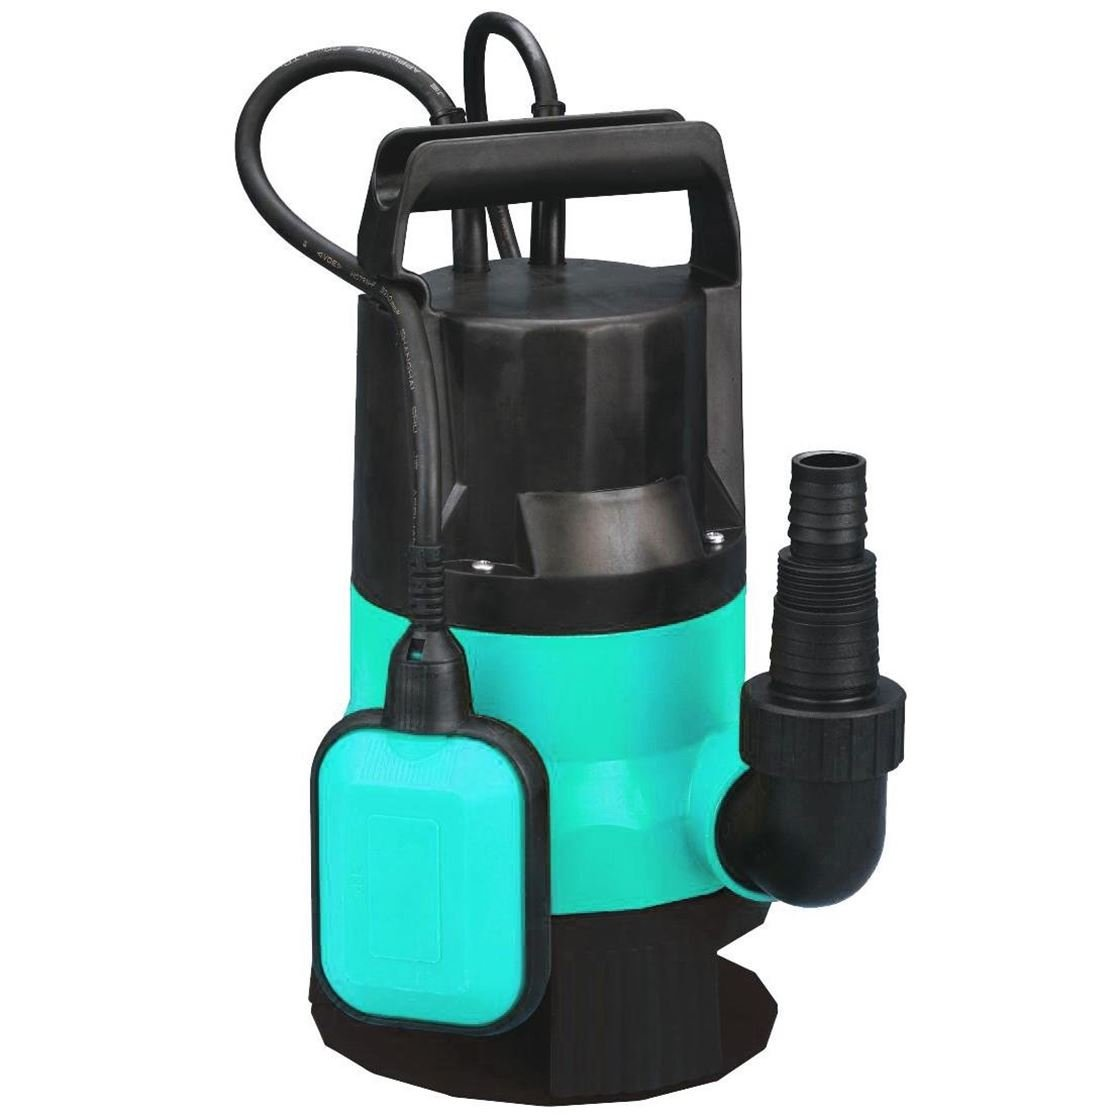 Oypla Heavy Duty Electric Submersible Pump for Clean/Dirty Water